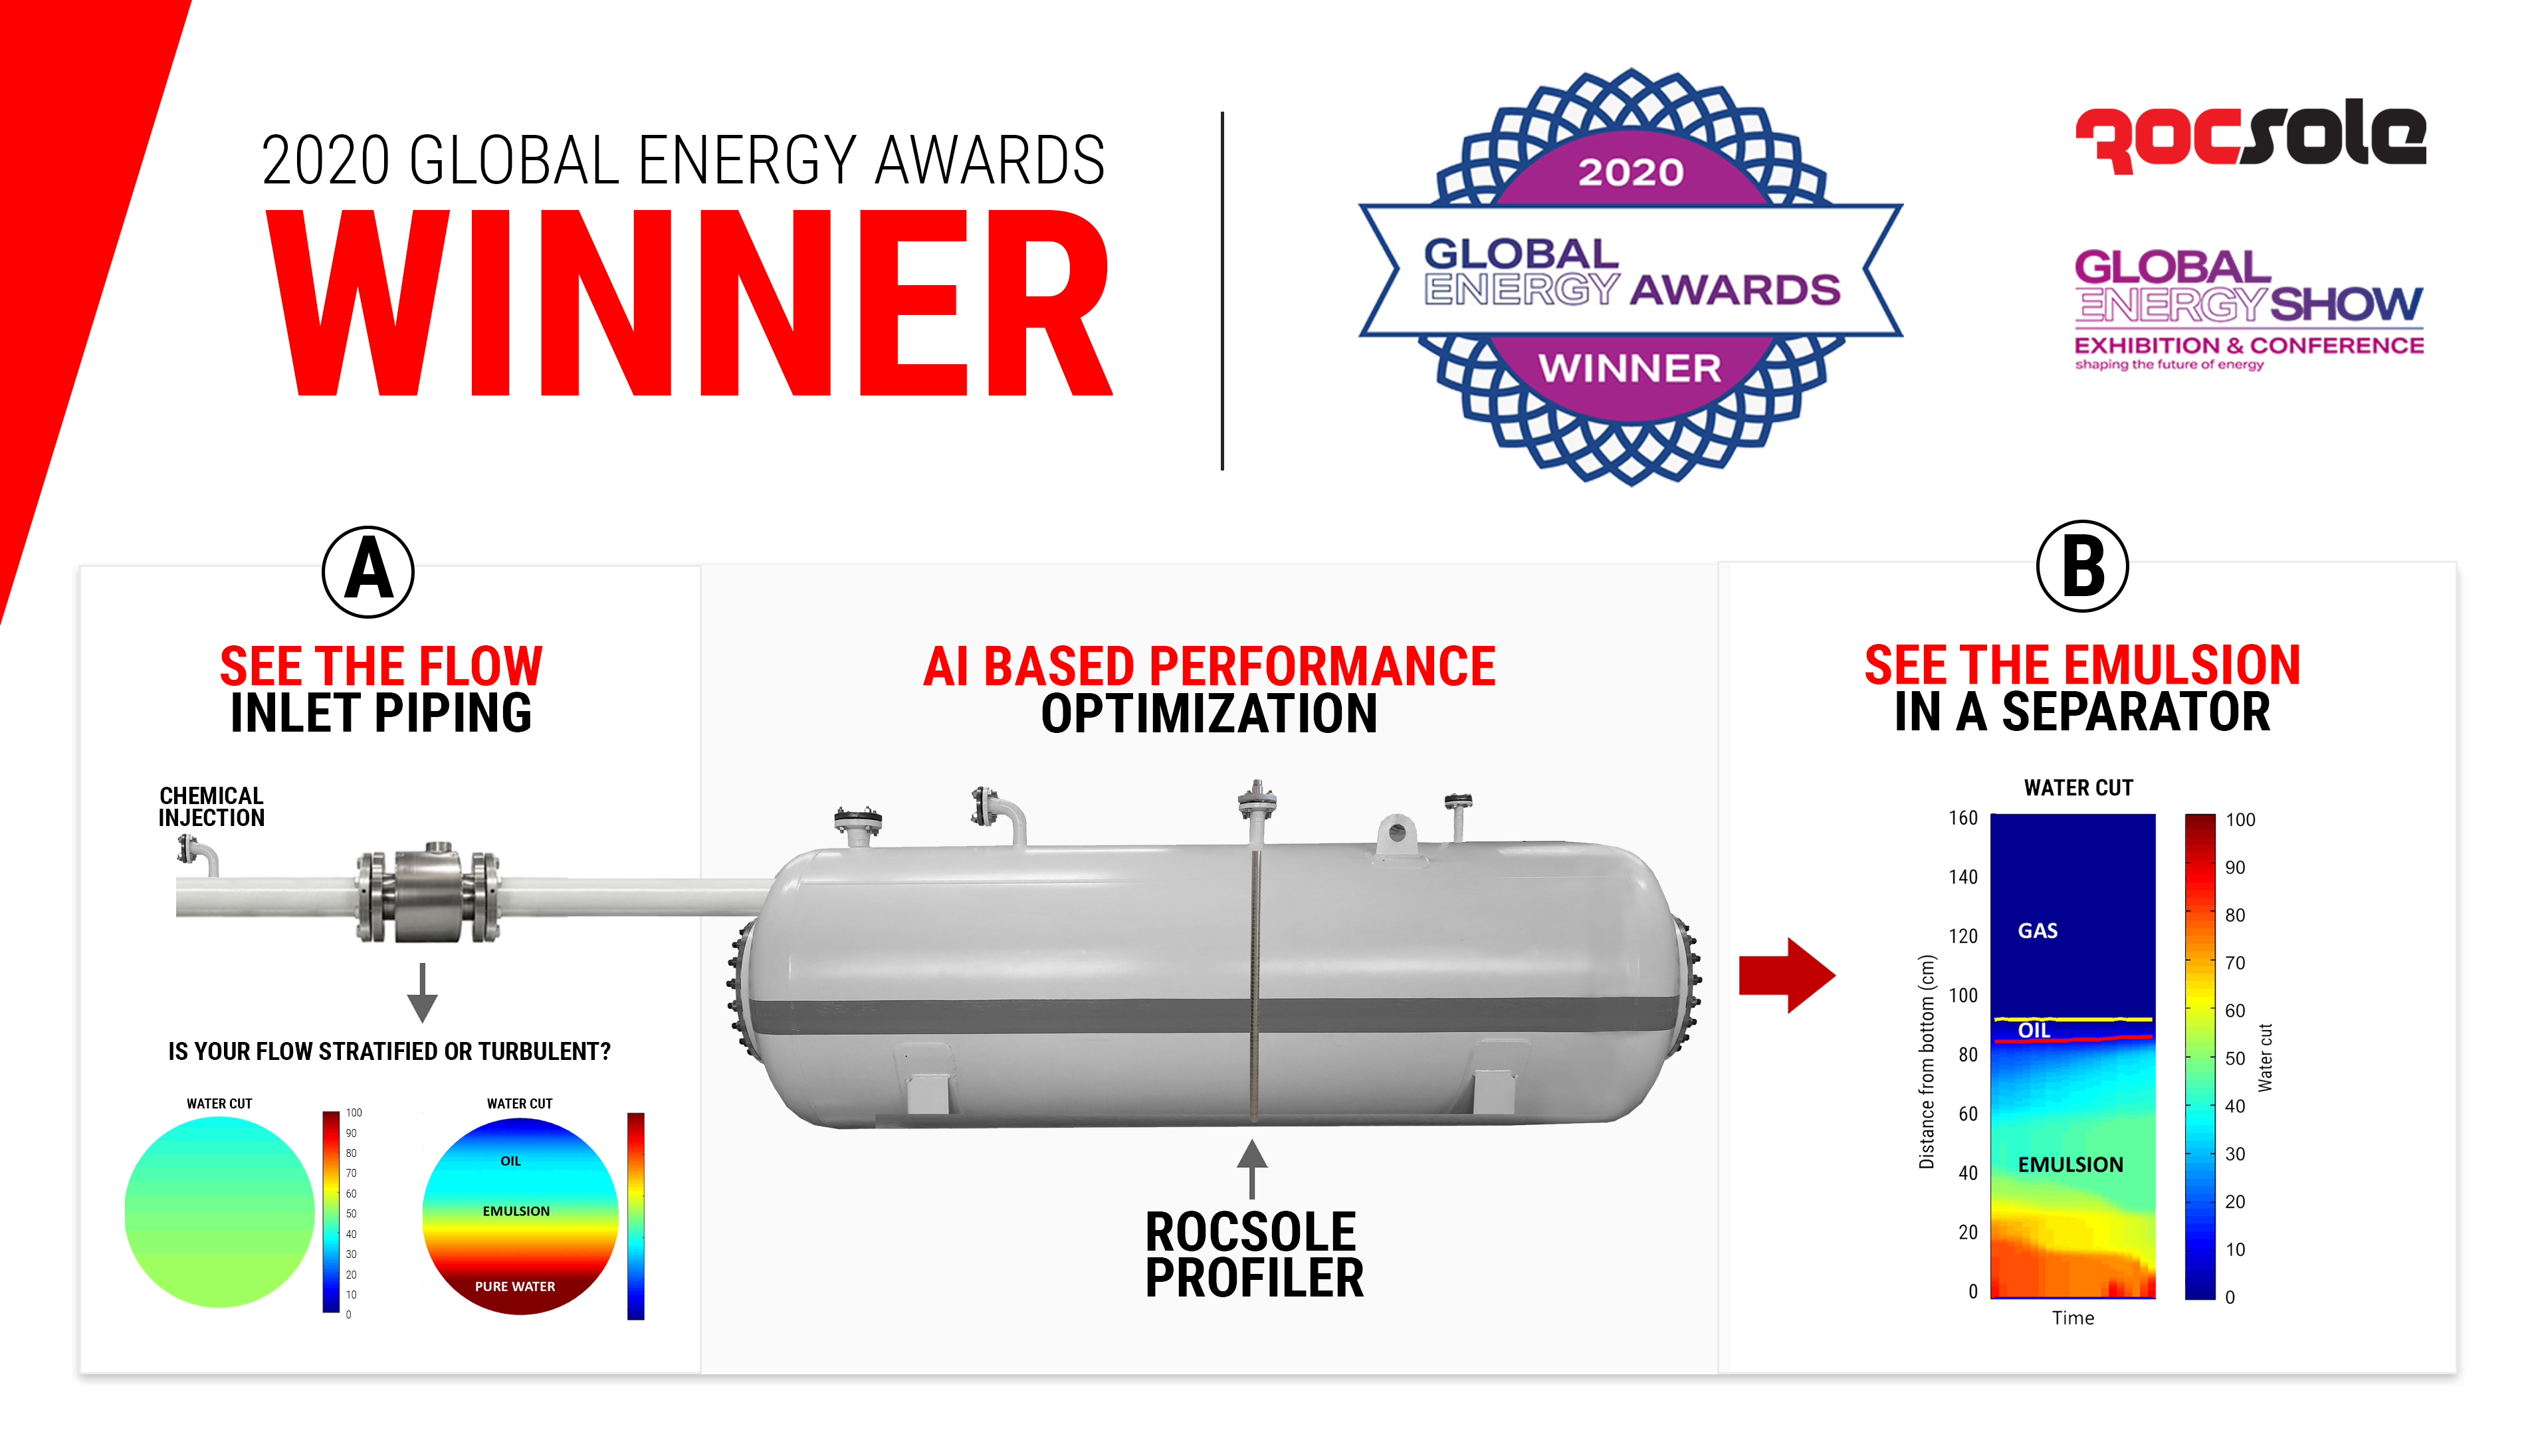 Rocsole is the Winner of the 2020 Global Energy Award for Innovation in Process Control